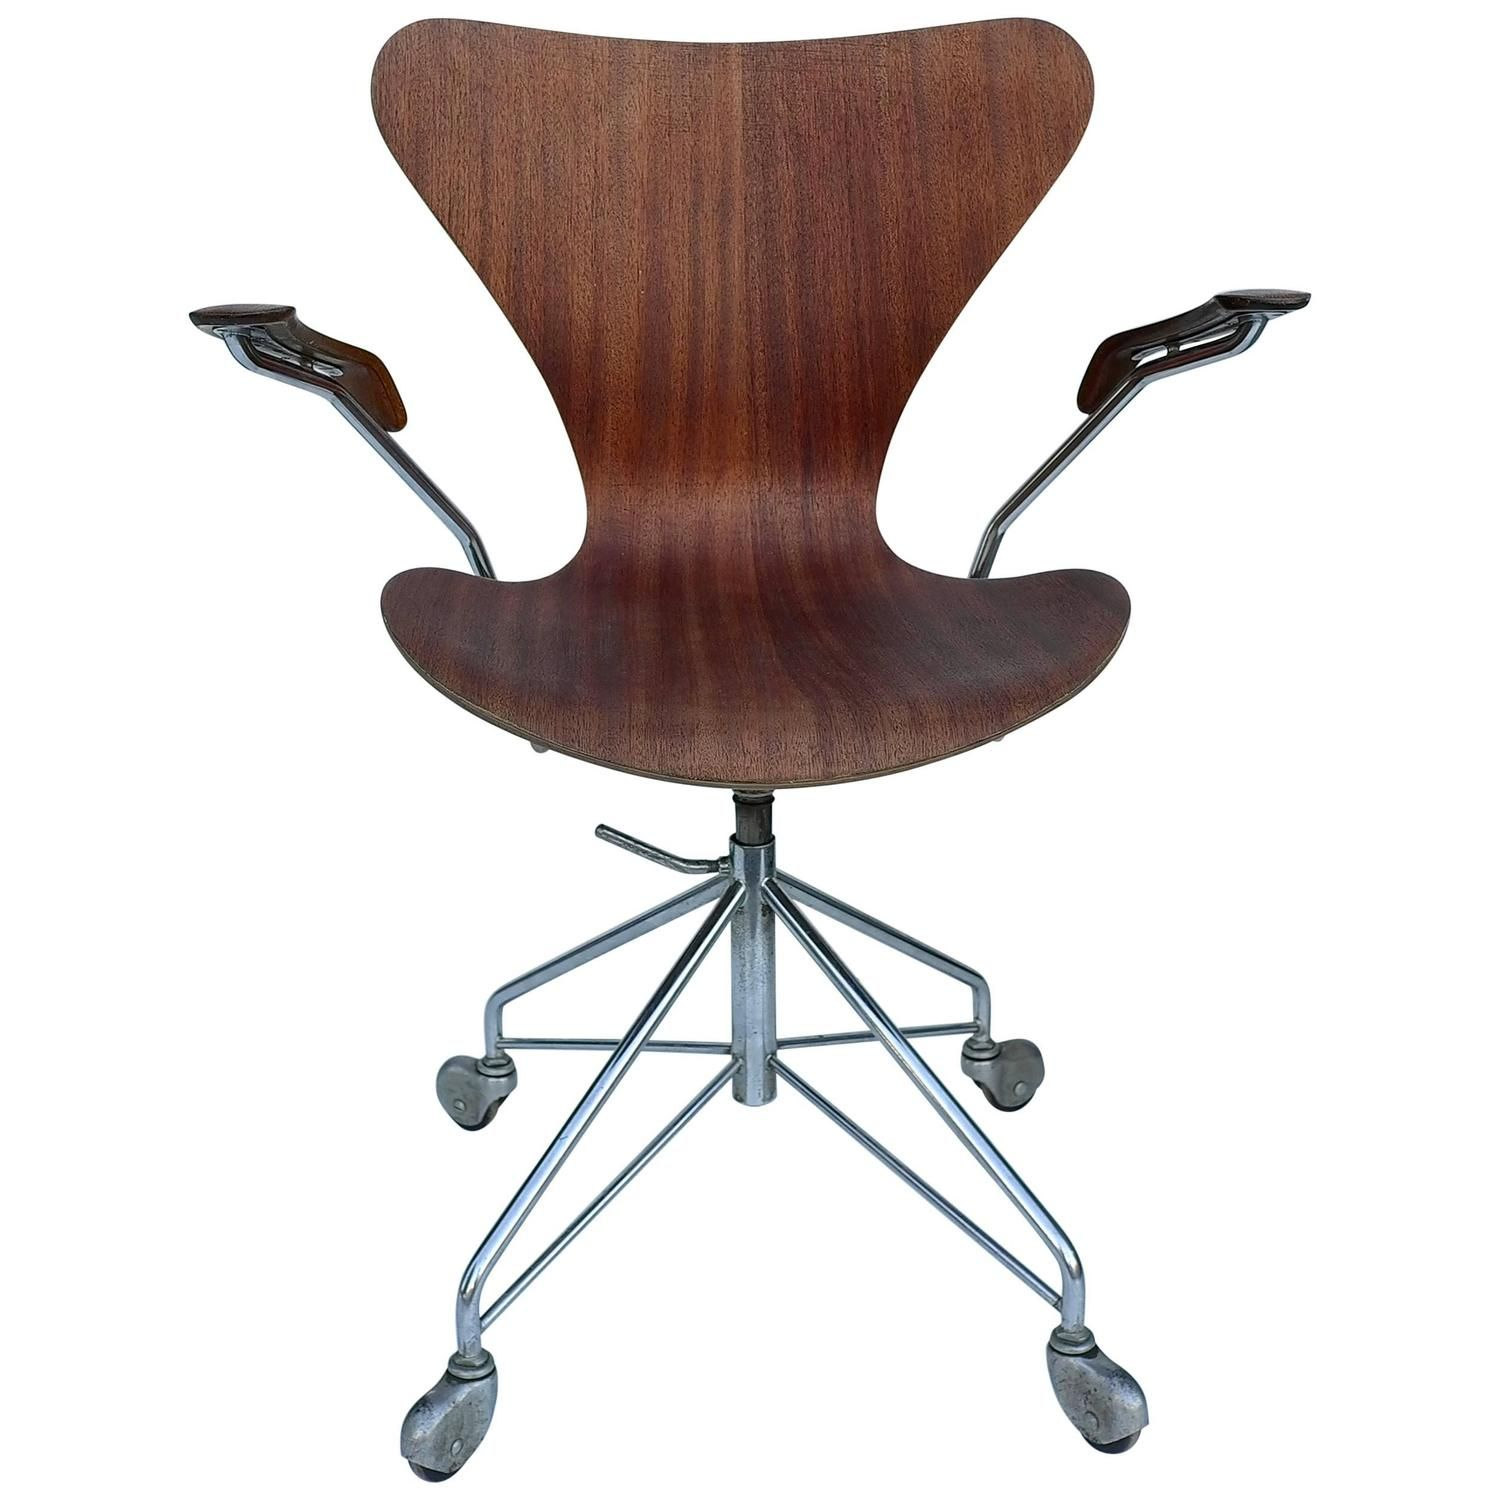 Early Arne Jacobsen Office Chair By Fritz Hansen Denmark